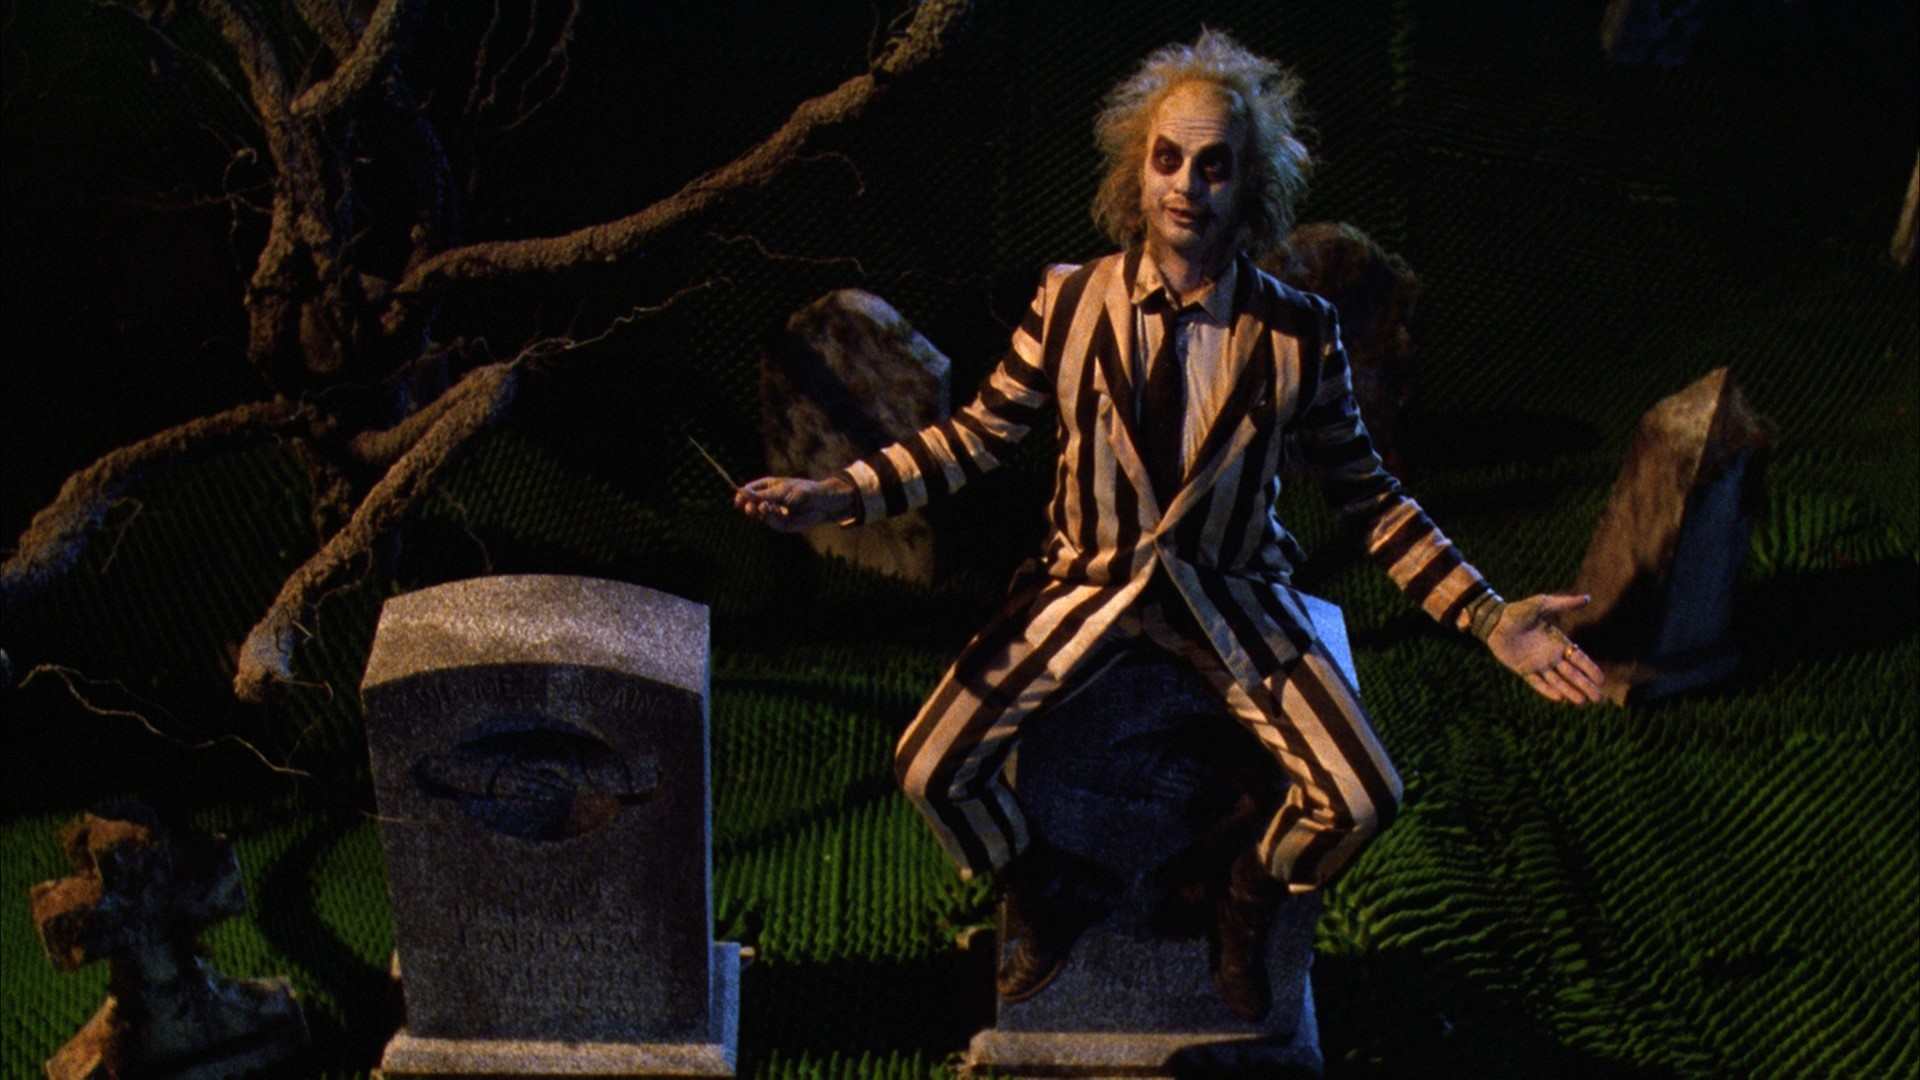 Beetlejuice (entertainer) Wallpapers